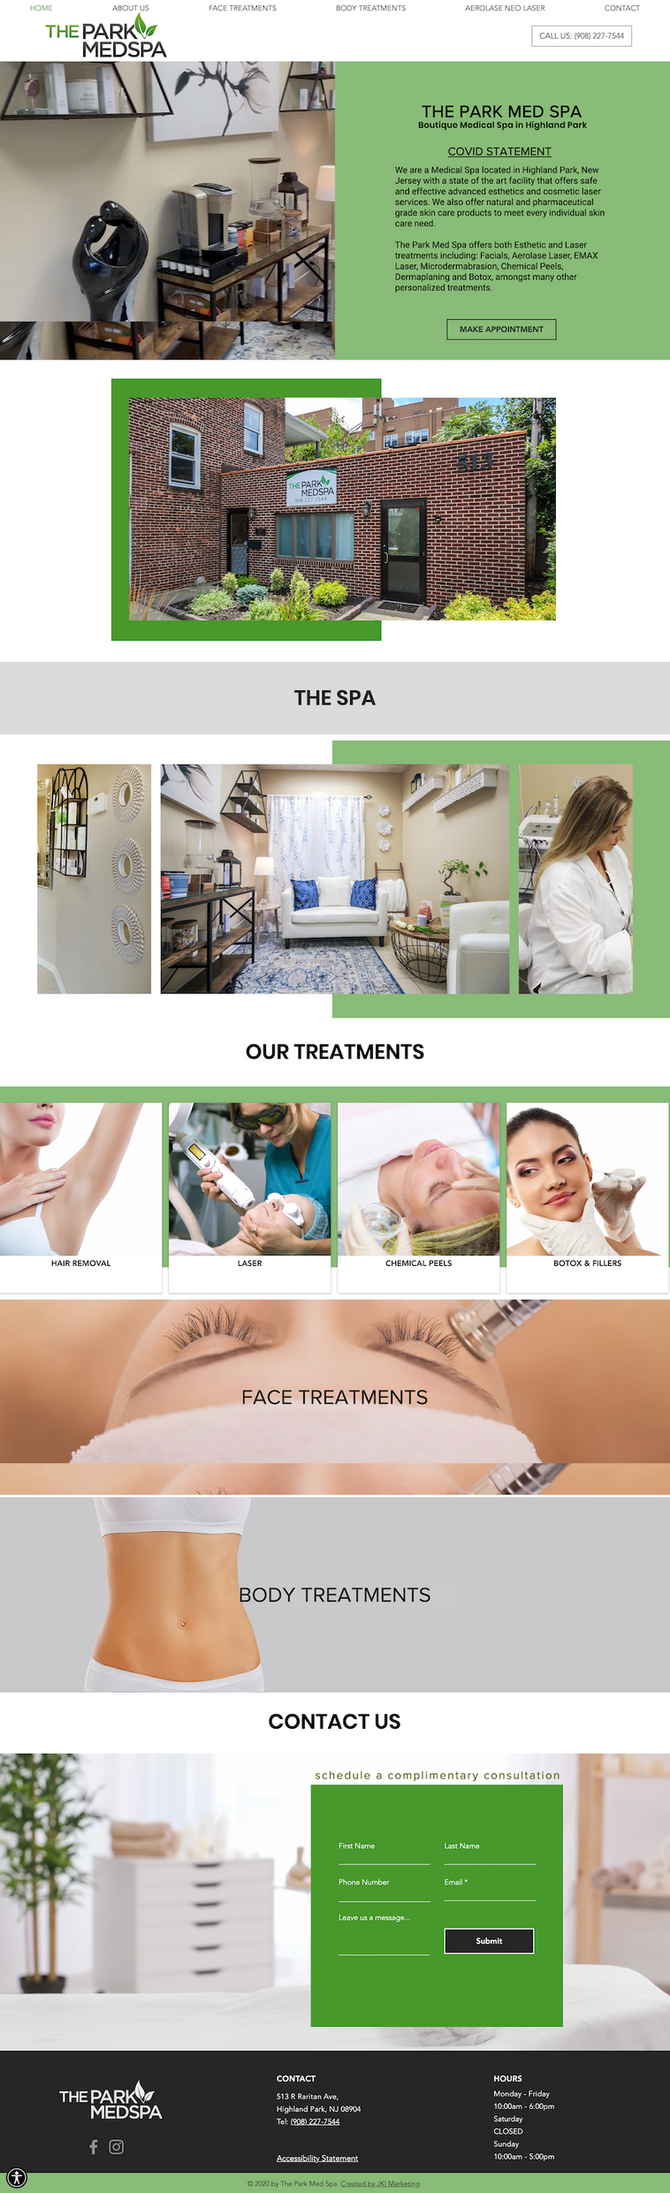 Website design for Medical SPA in New Jersey